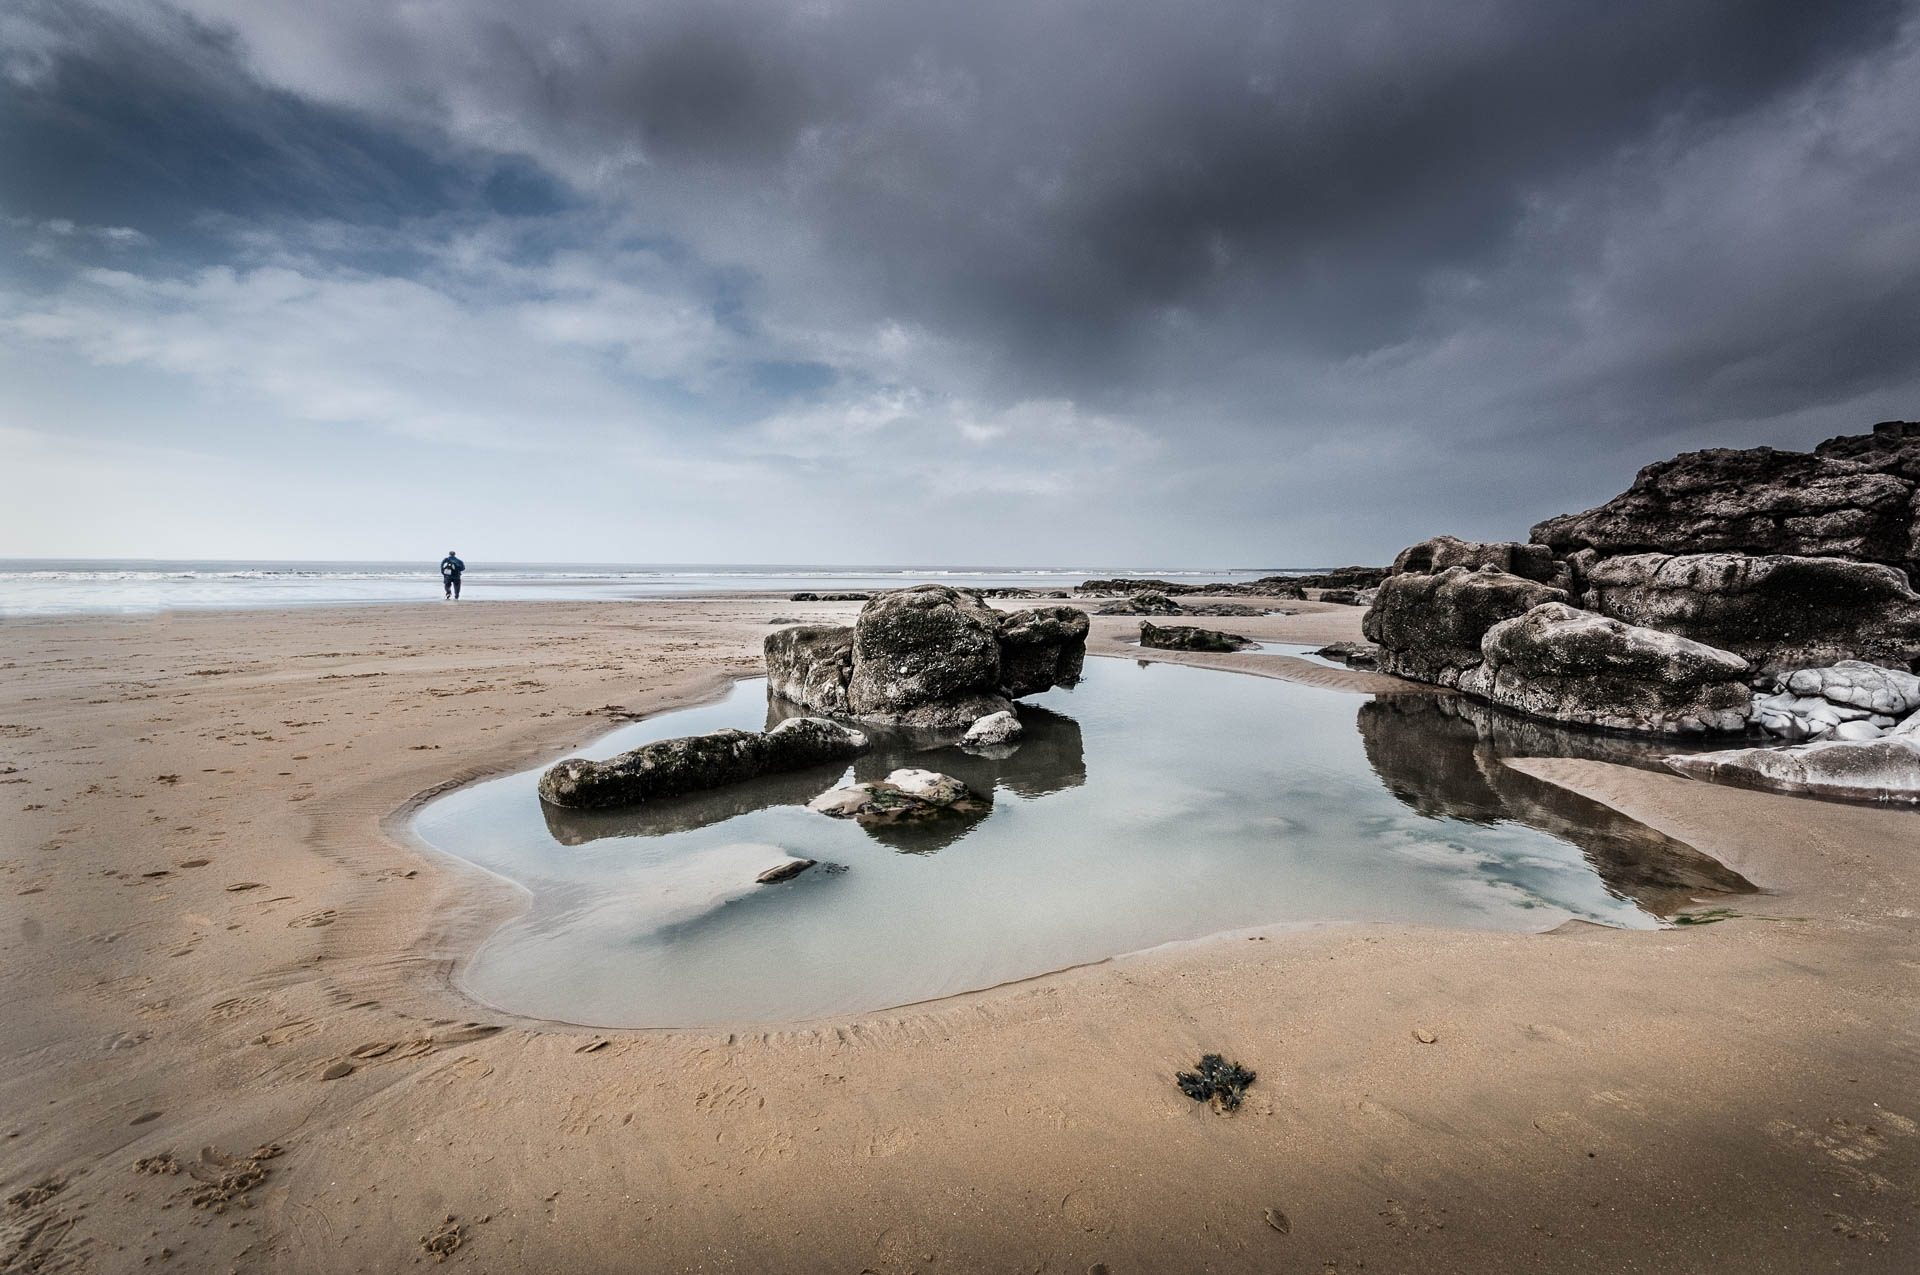 Alone by Clive Martin